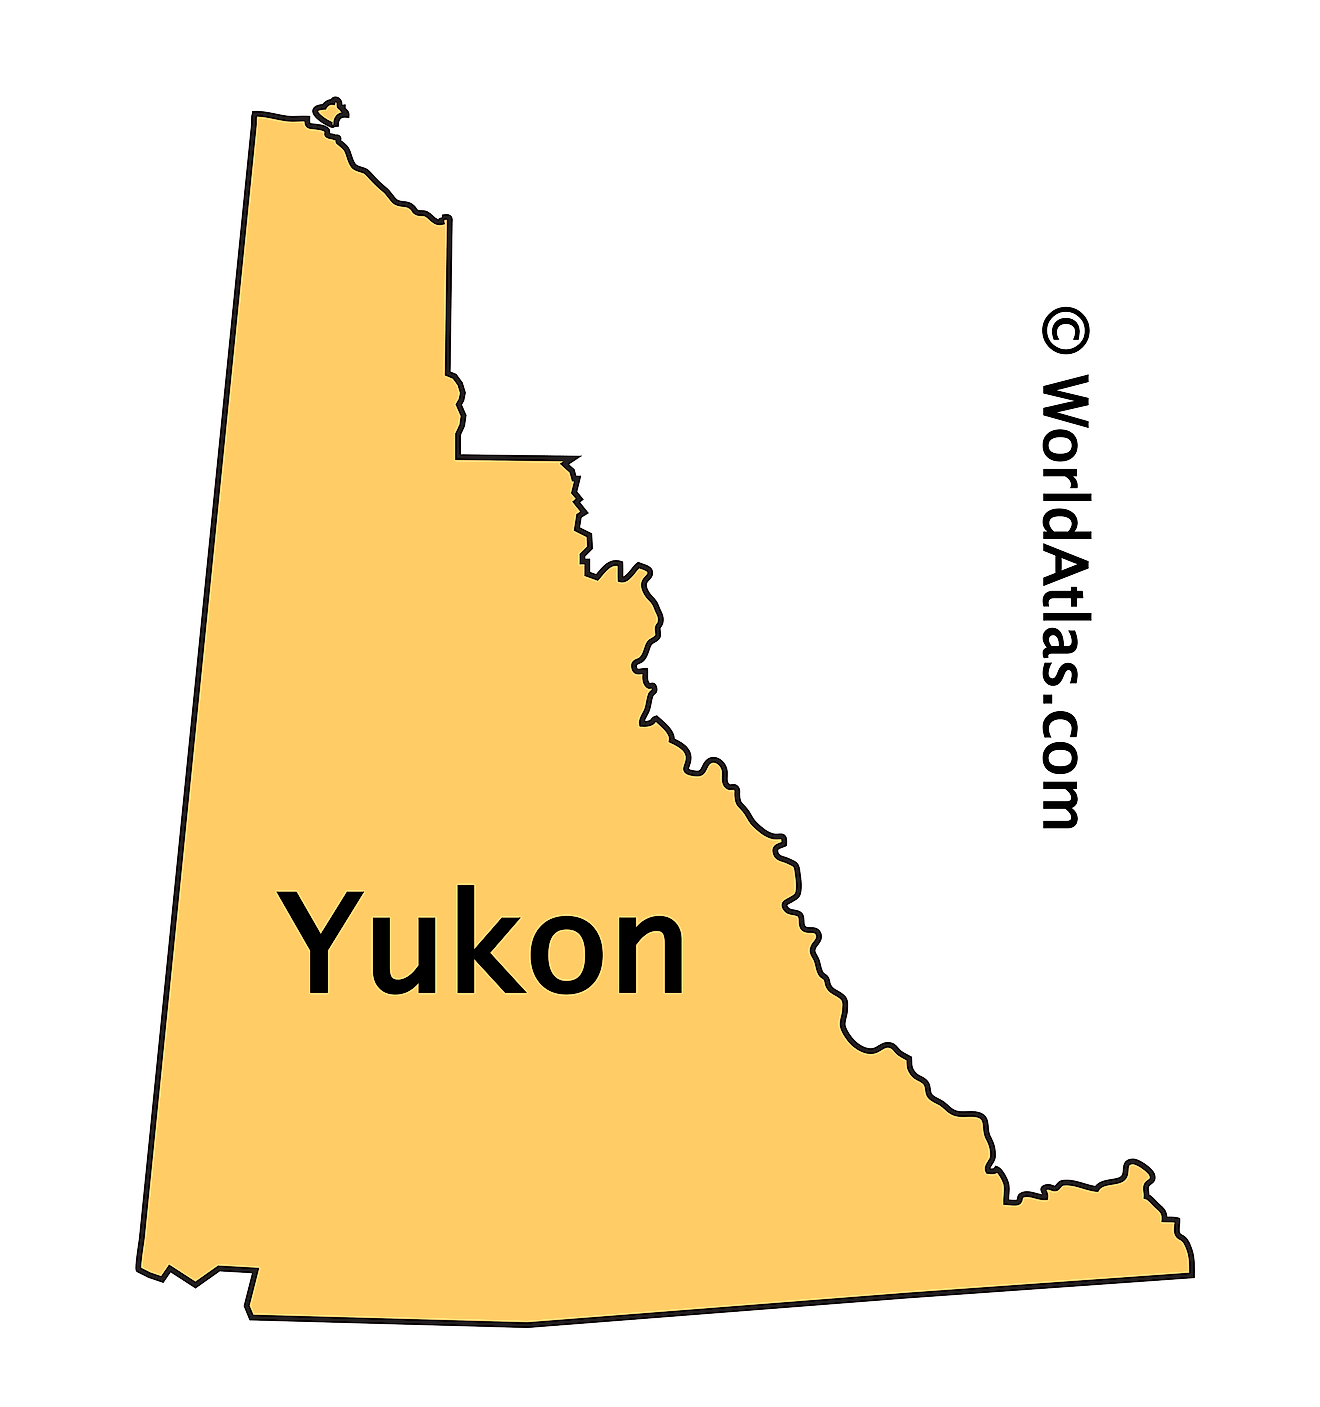 Outline Map of Yukon